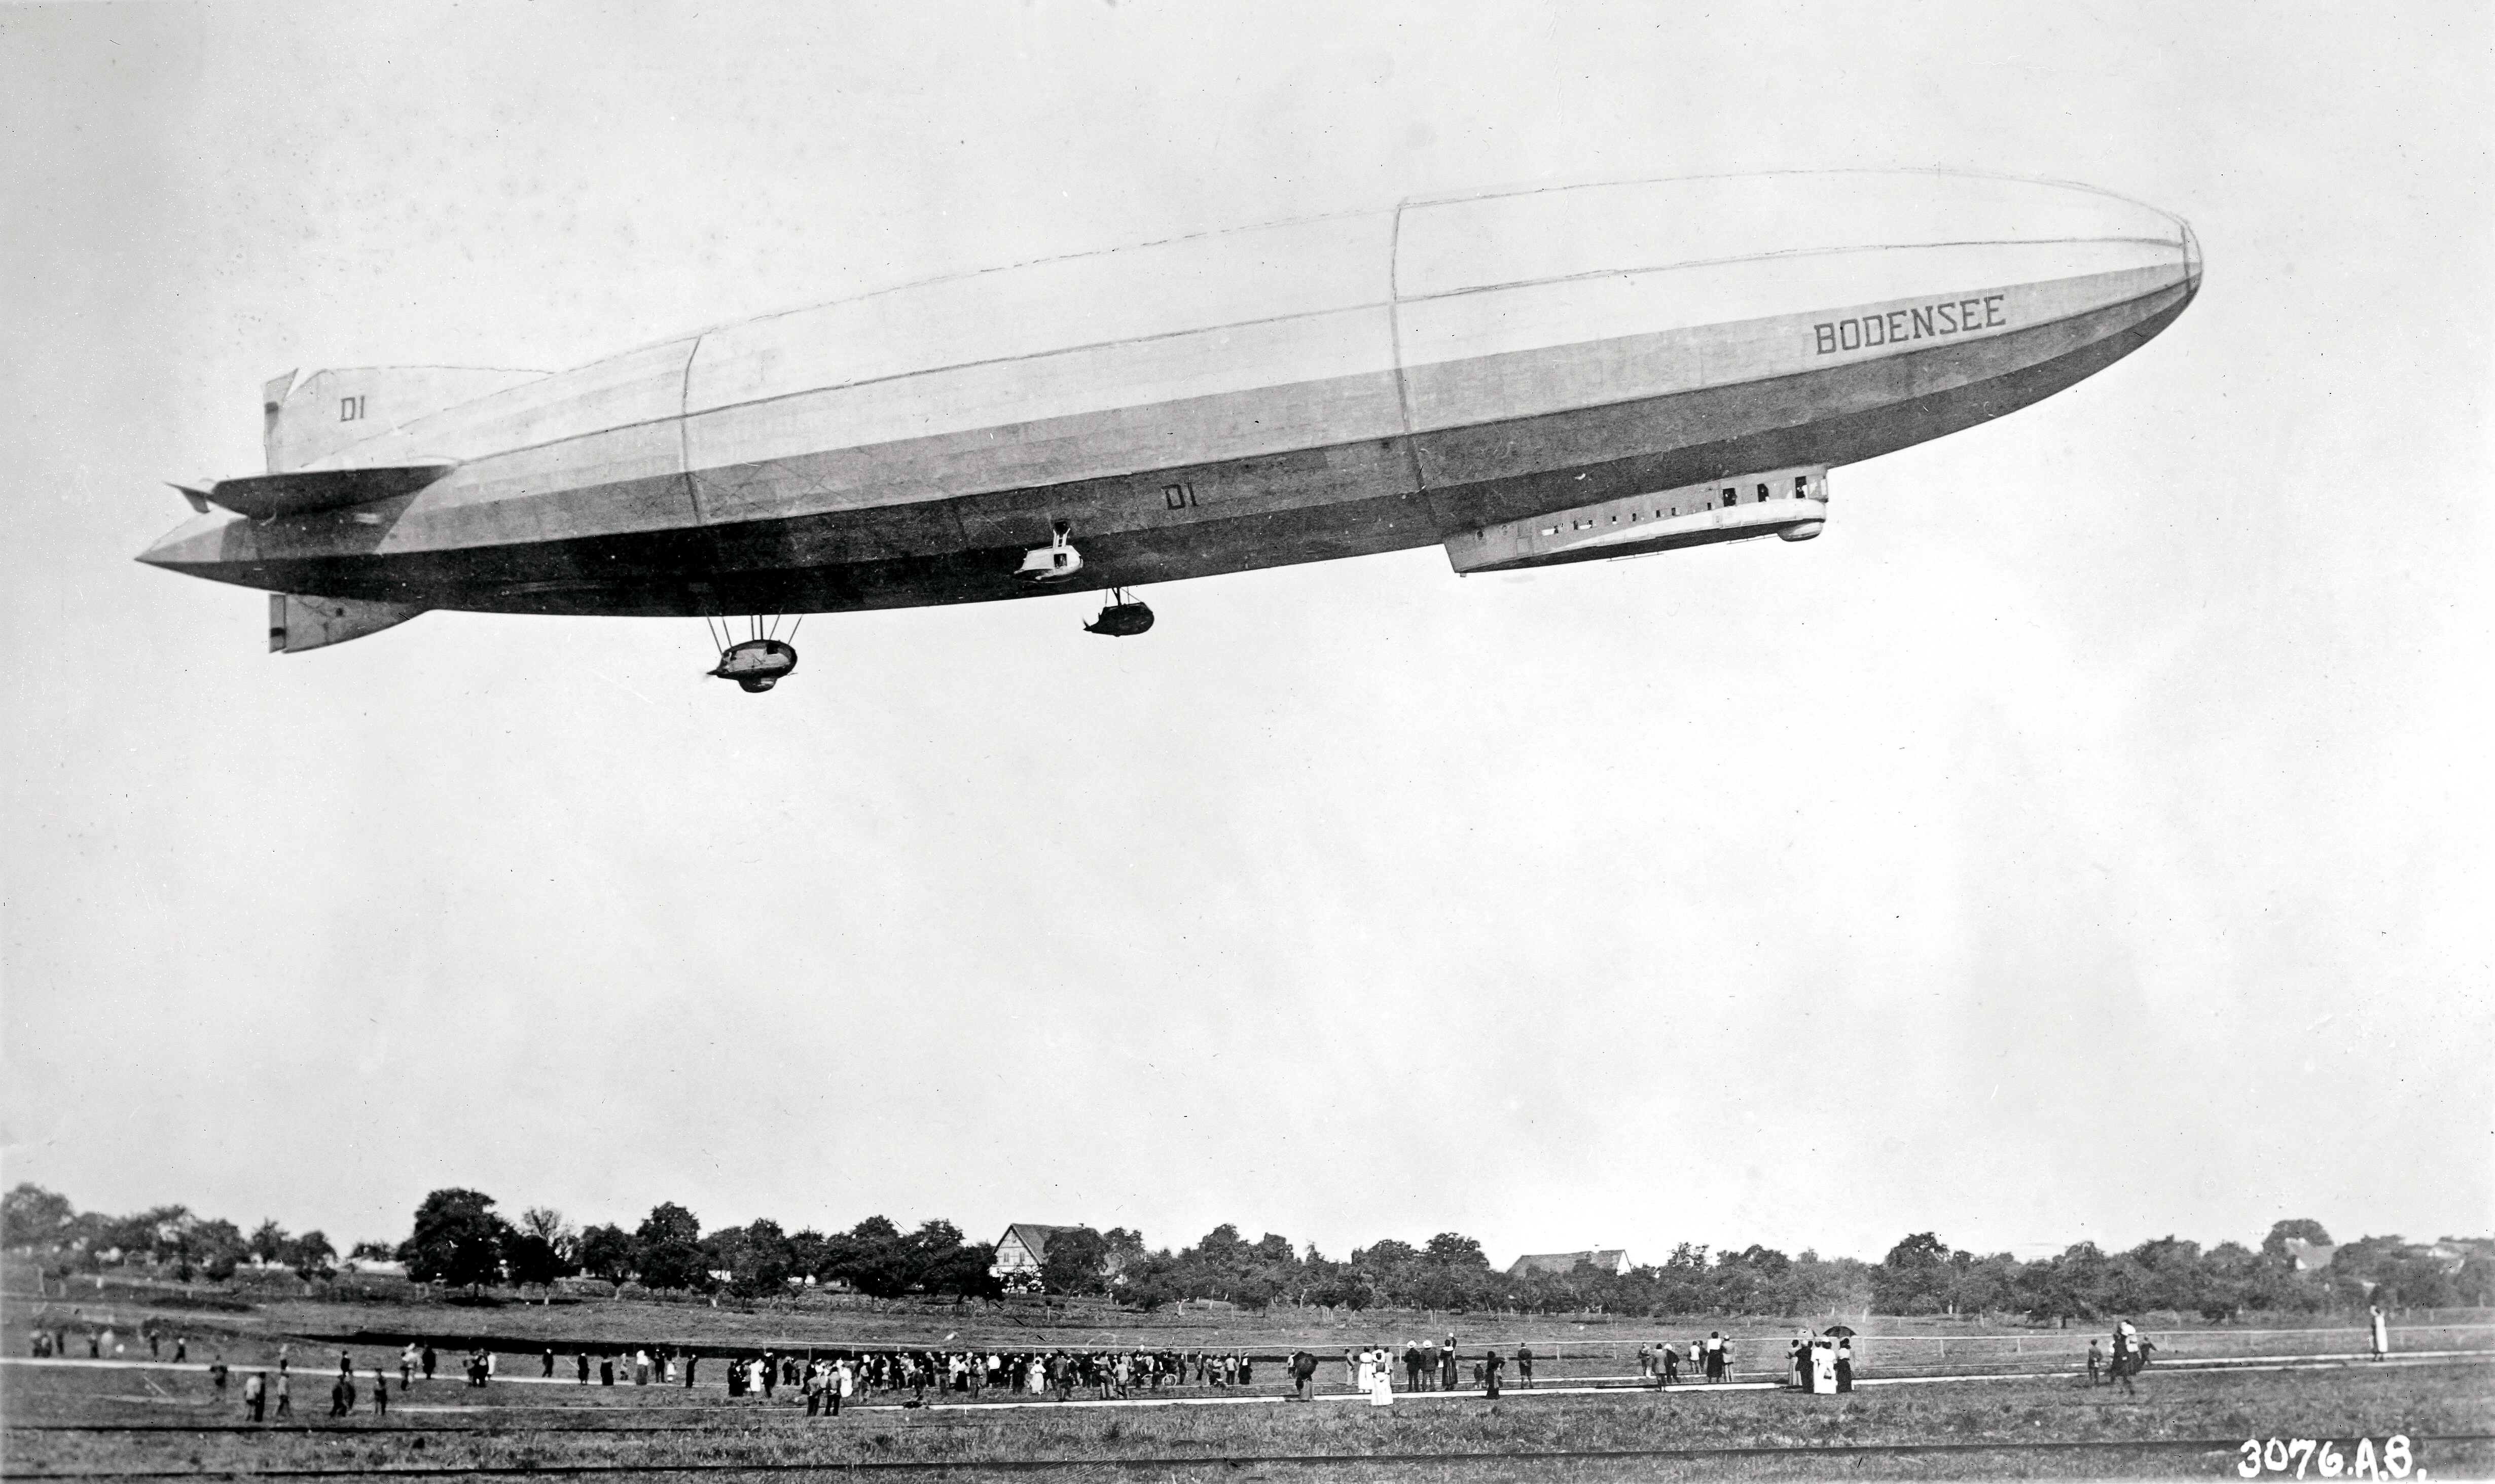 Airship Bodensee, Oct. 1919